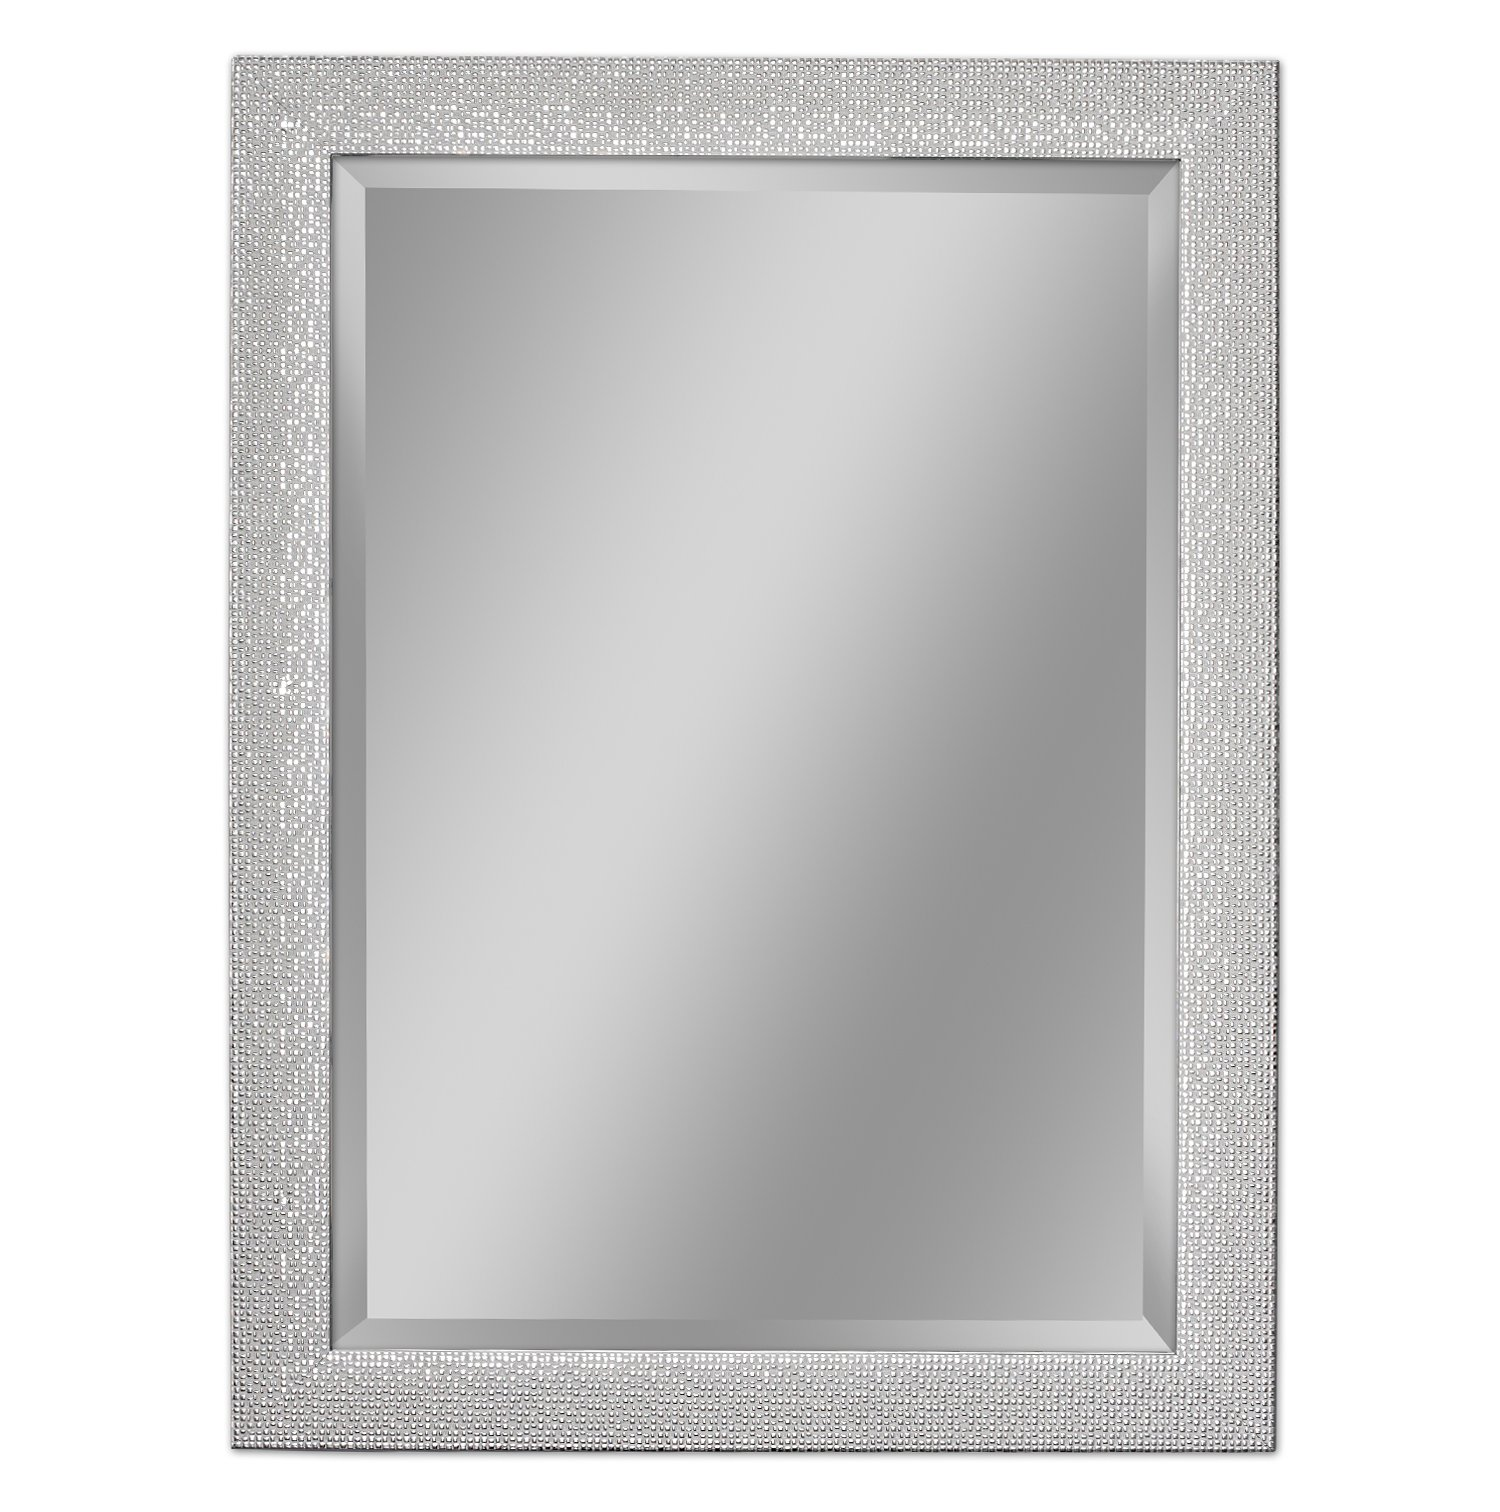 Headwest 8015 Squares Wall Mirror, White and Chrome